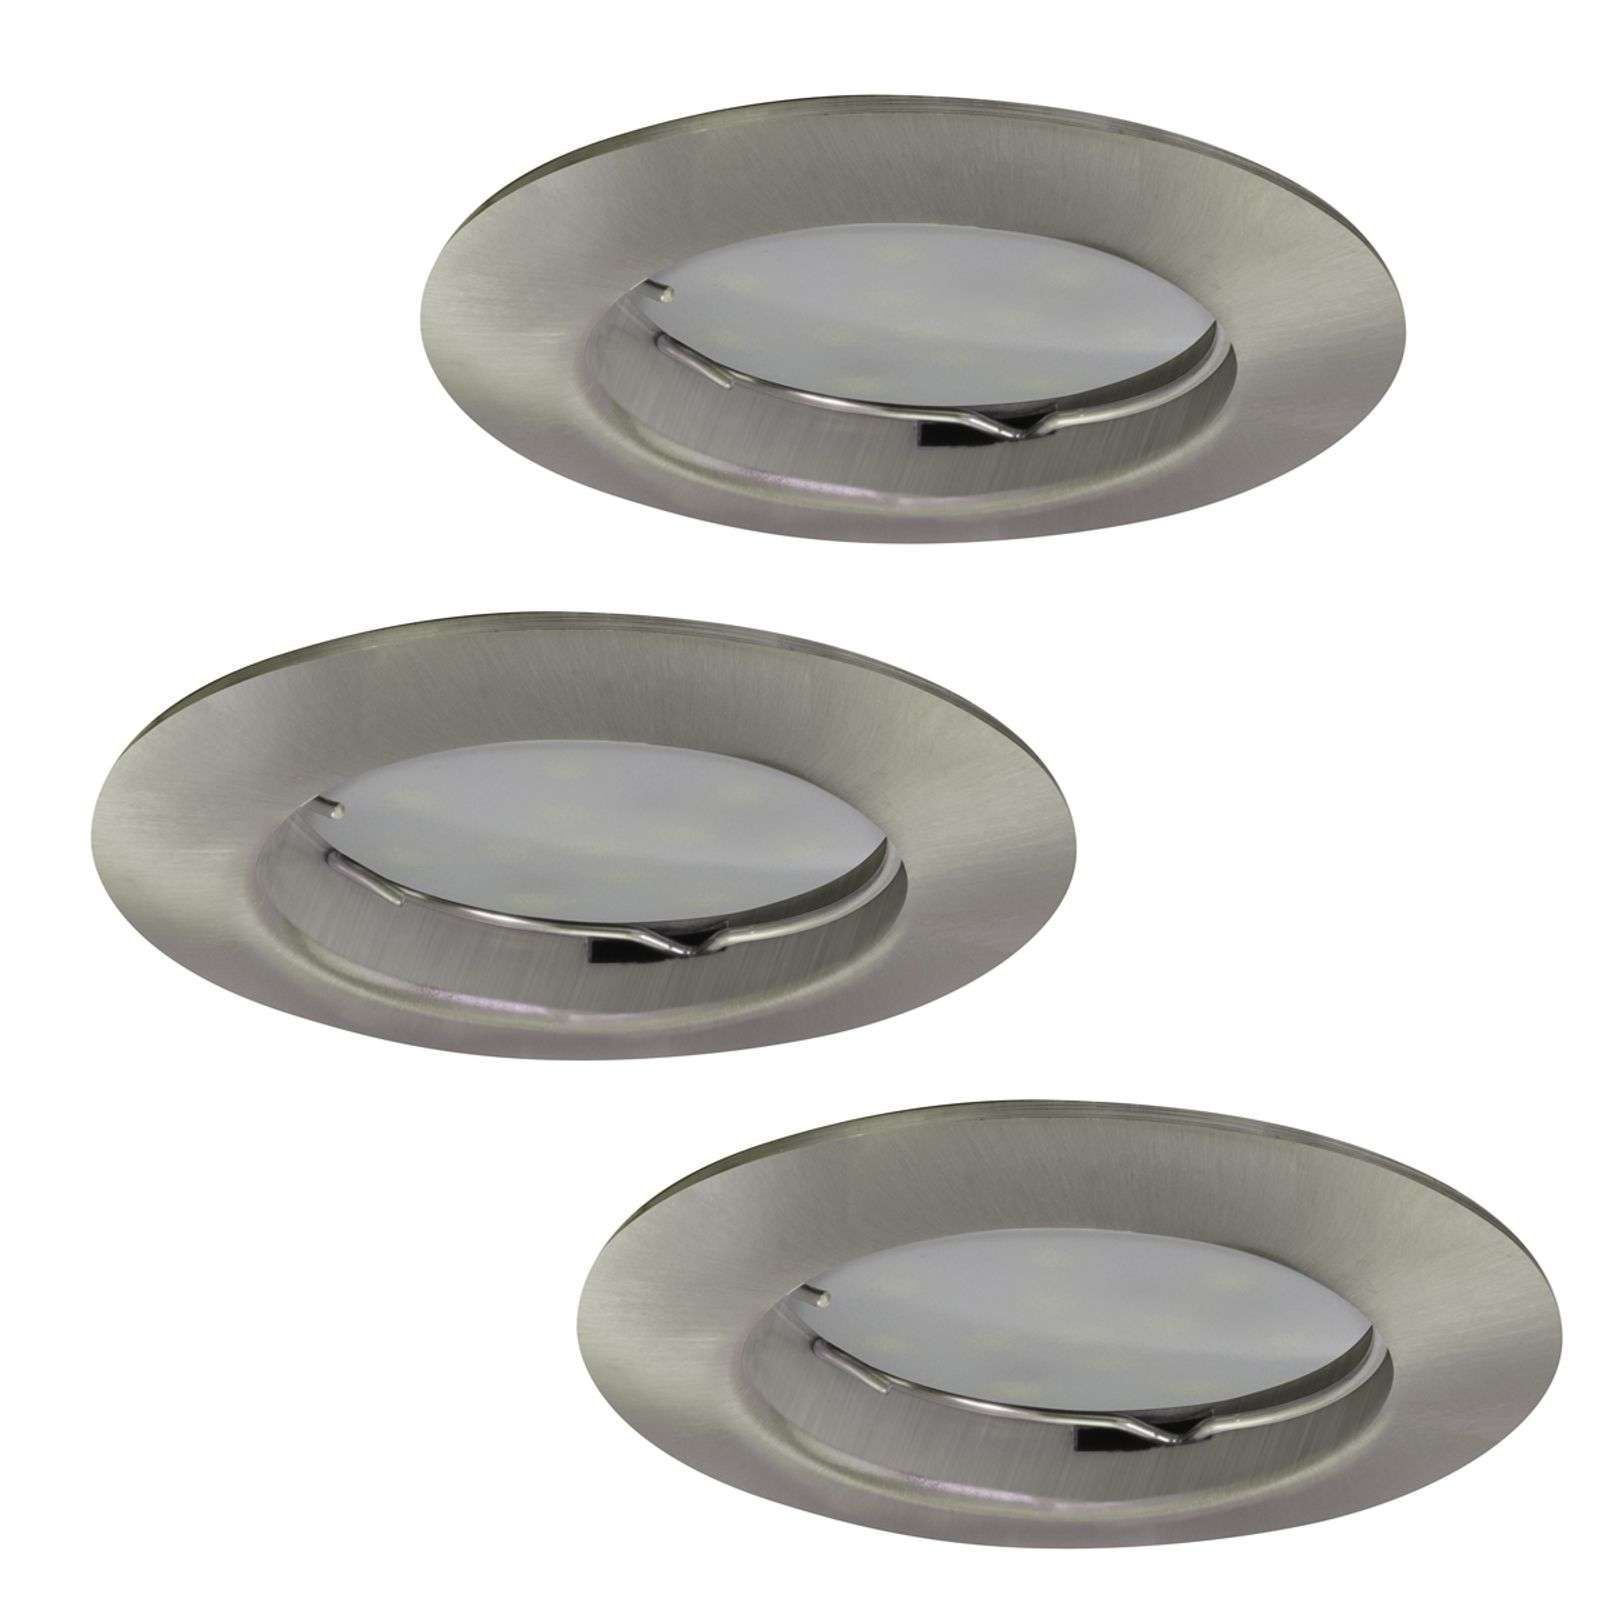 3 Downlight DIM Flat LED recessed spots nickel